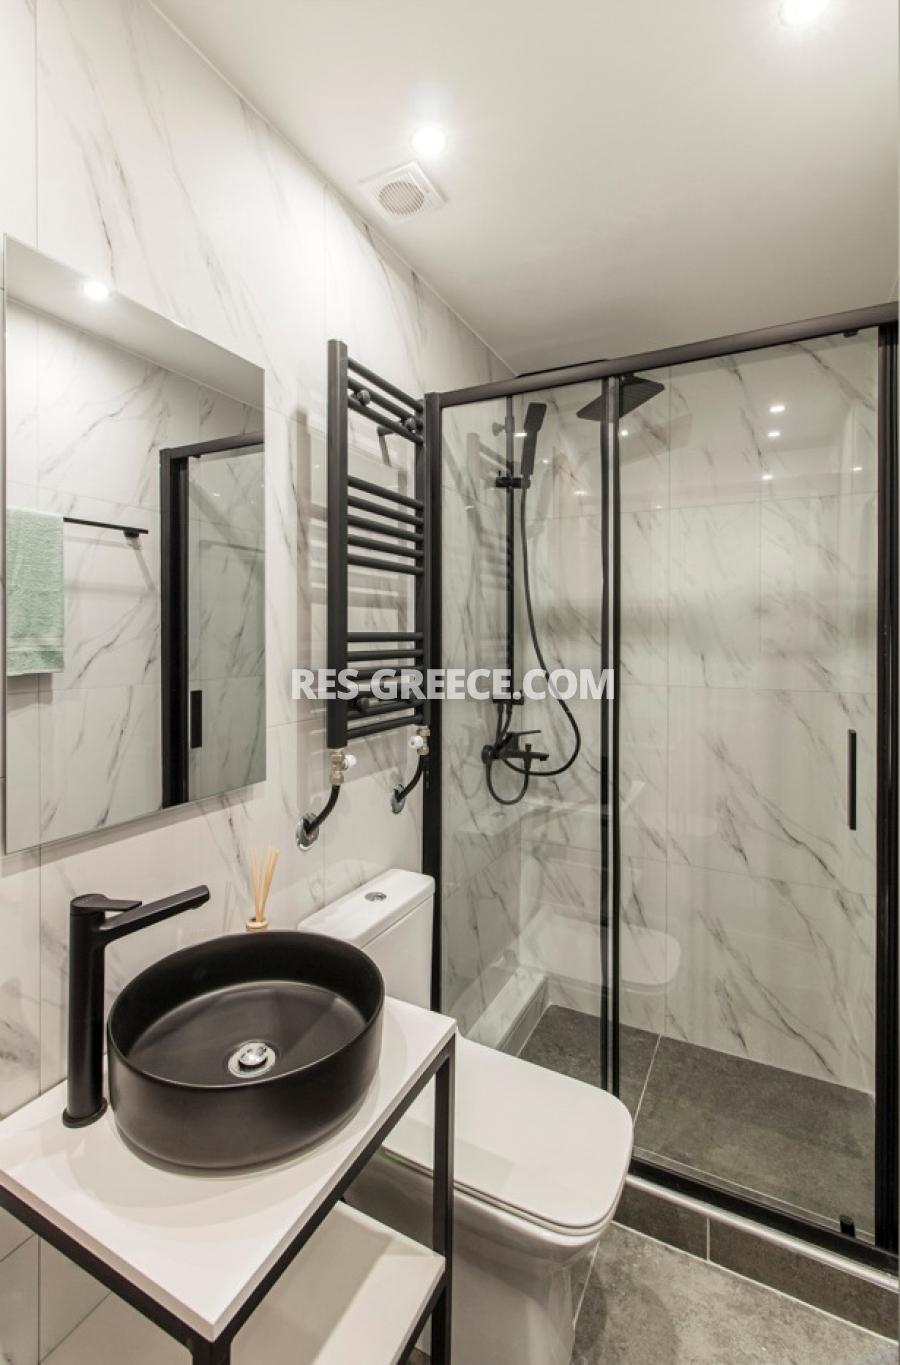 ?.Foka B, Central Macedonia, Greece - apartments in Thessaloniki center for long-term or short-term rent - Photo 11